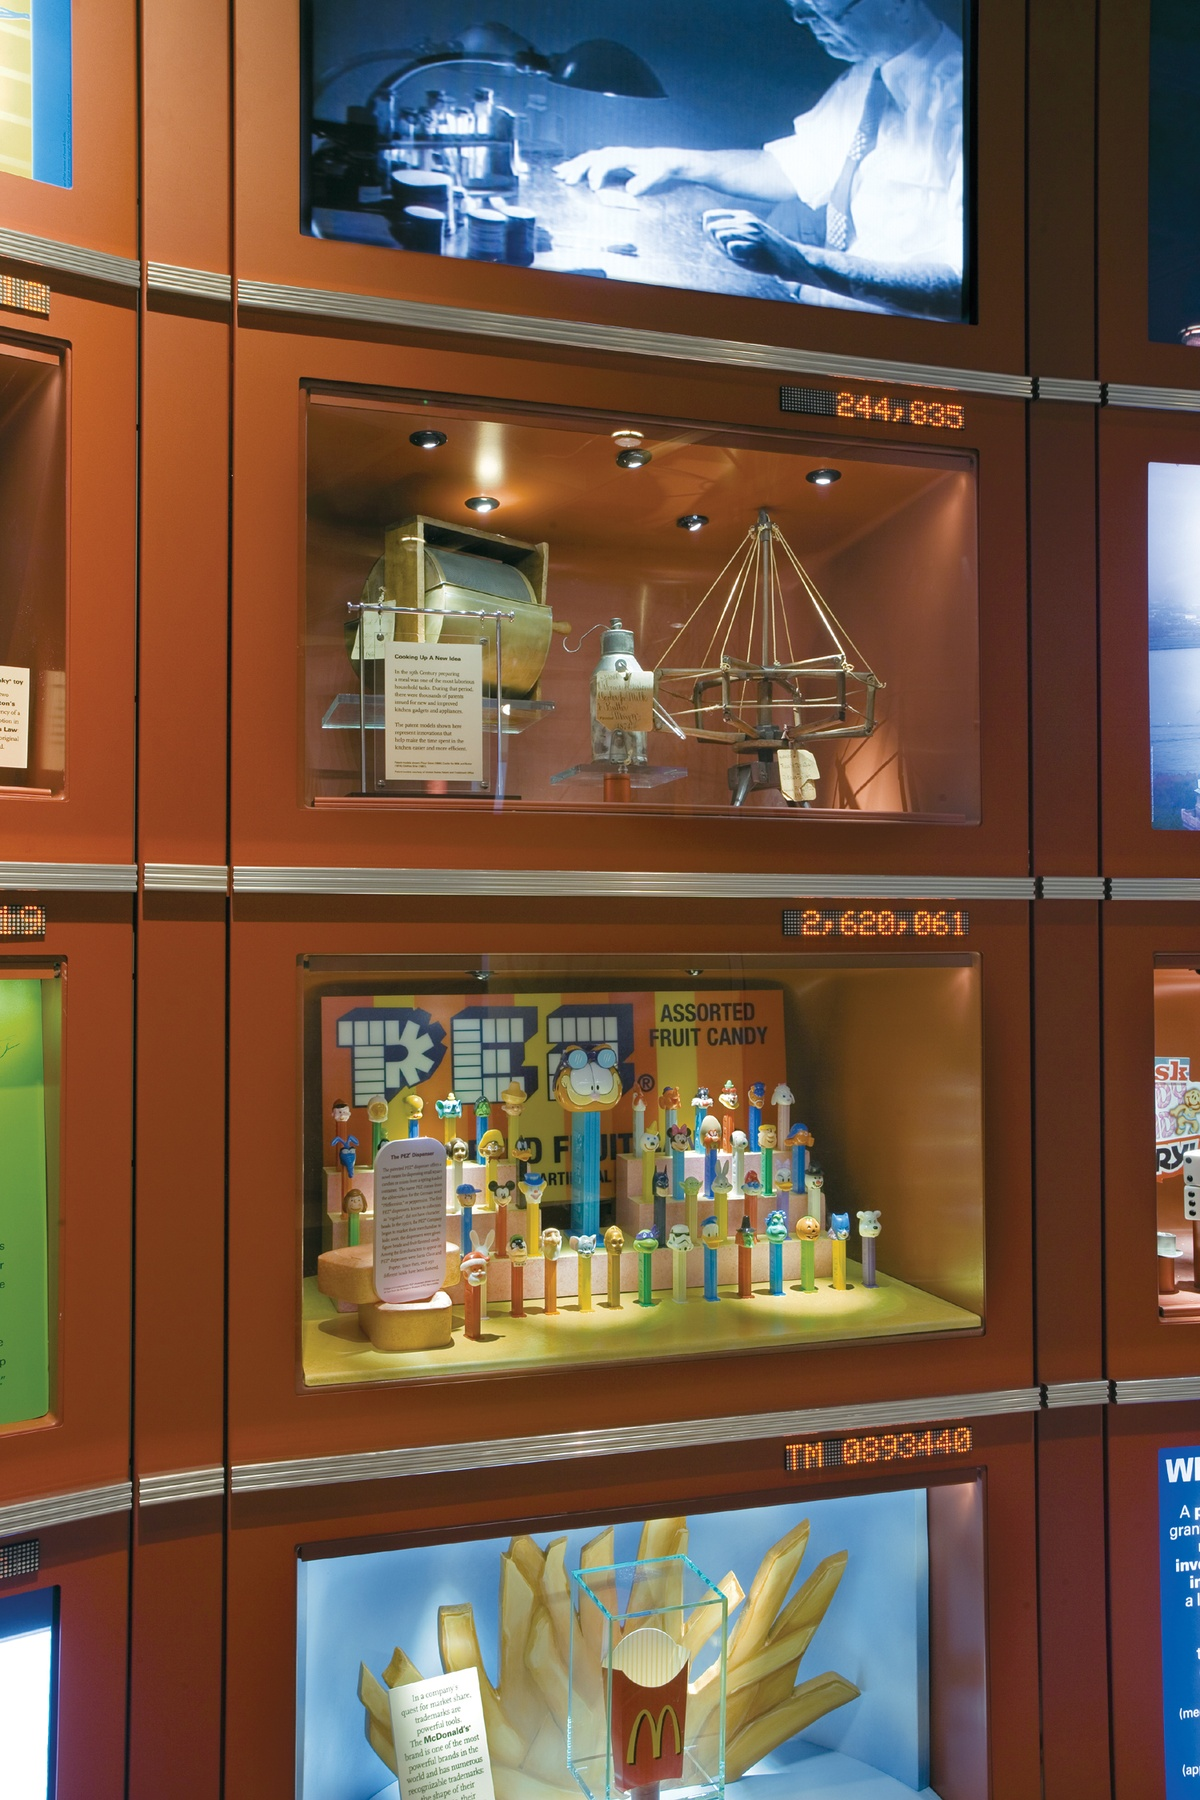 US Patent & Trademark Office, Inventor's Hall of Fame Exhibit